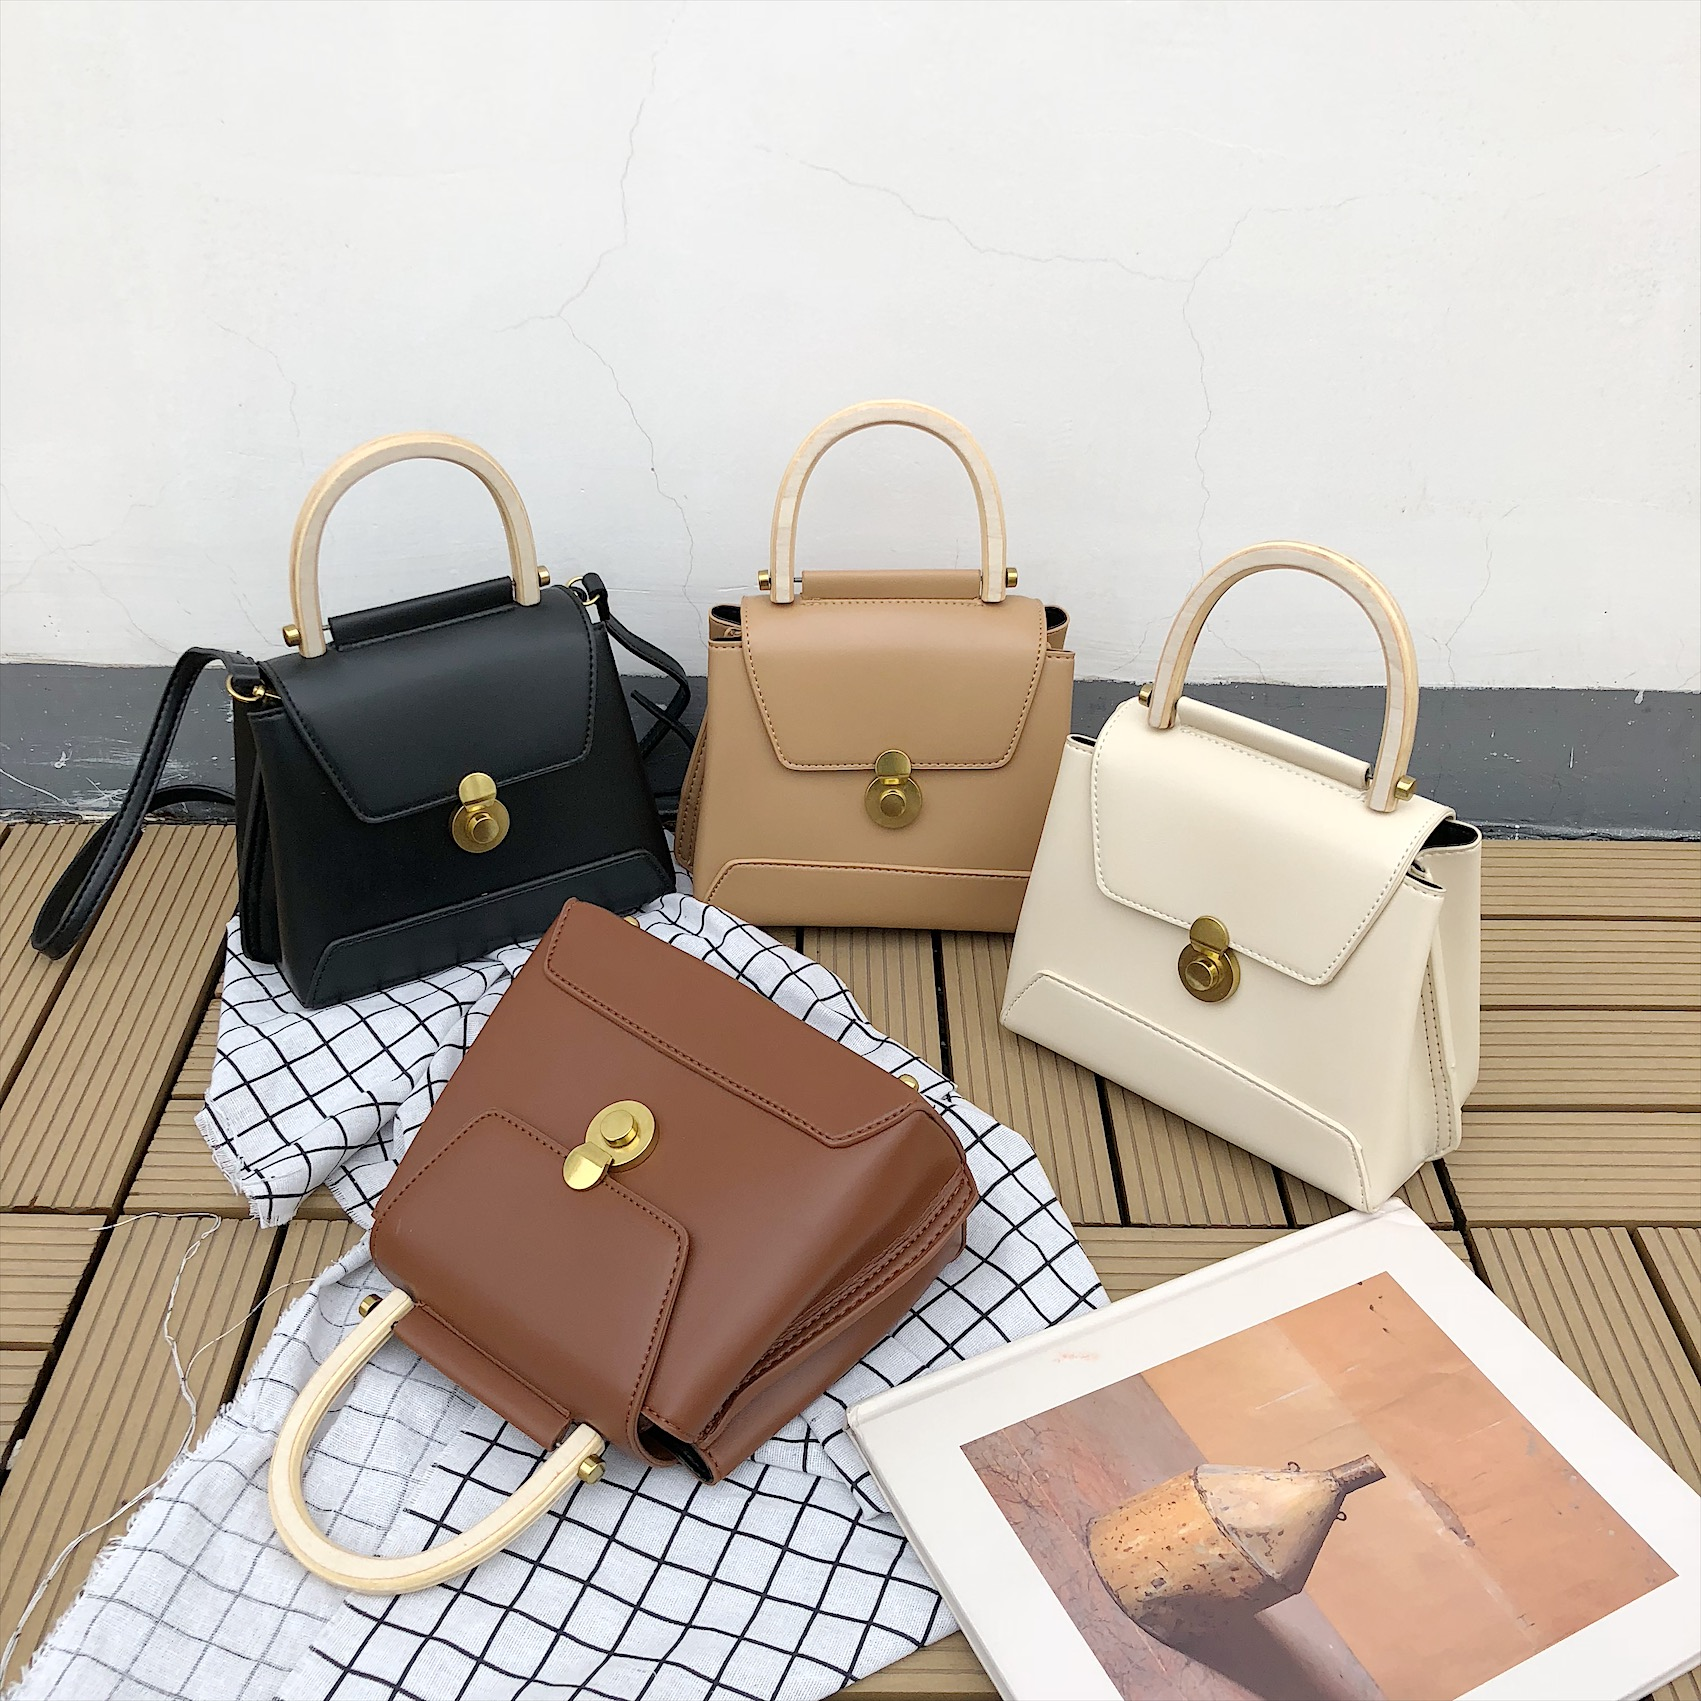 Retro Wooden Handle Handbags Chic PU Leather Shoulder Bags Casual Crossbody Bags for Women Clutch Purses Totes Ladies HandbagsRetro Wooden Handle Handbags Chic PU Leather Shoulder Bags Casual Crossbody Bags for Women Clutch Purses Totes Ladies Handbags